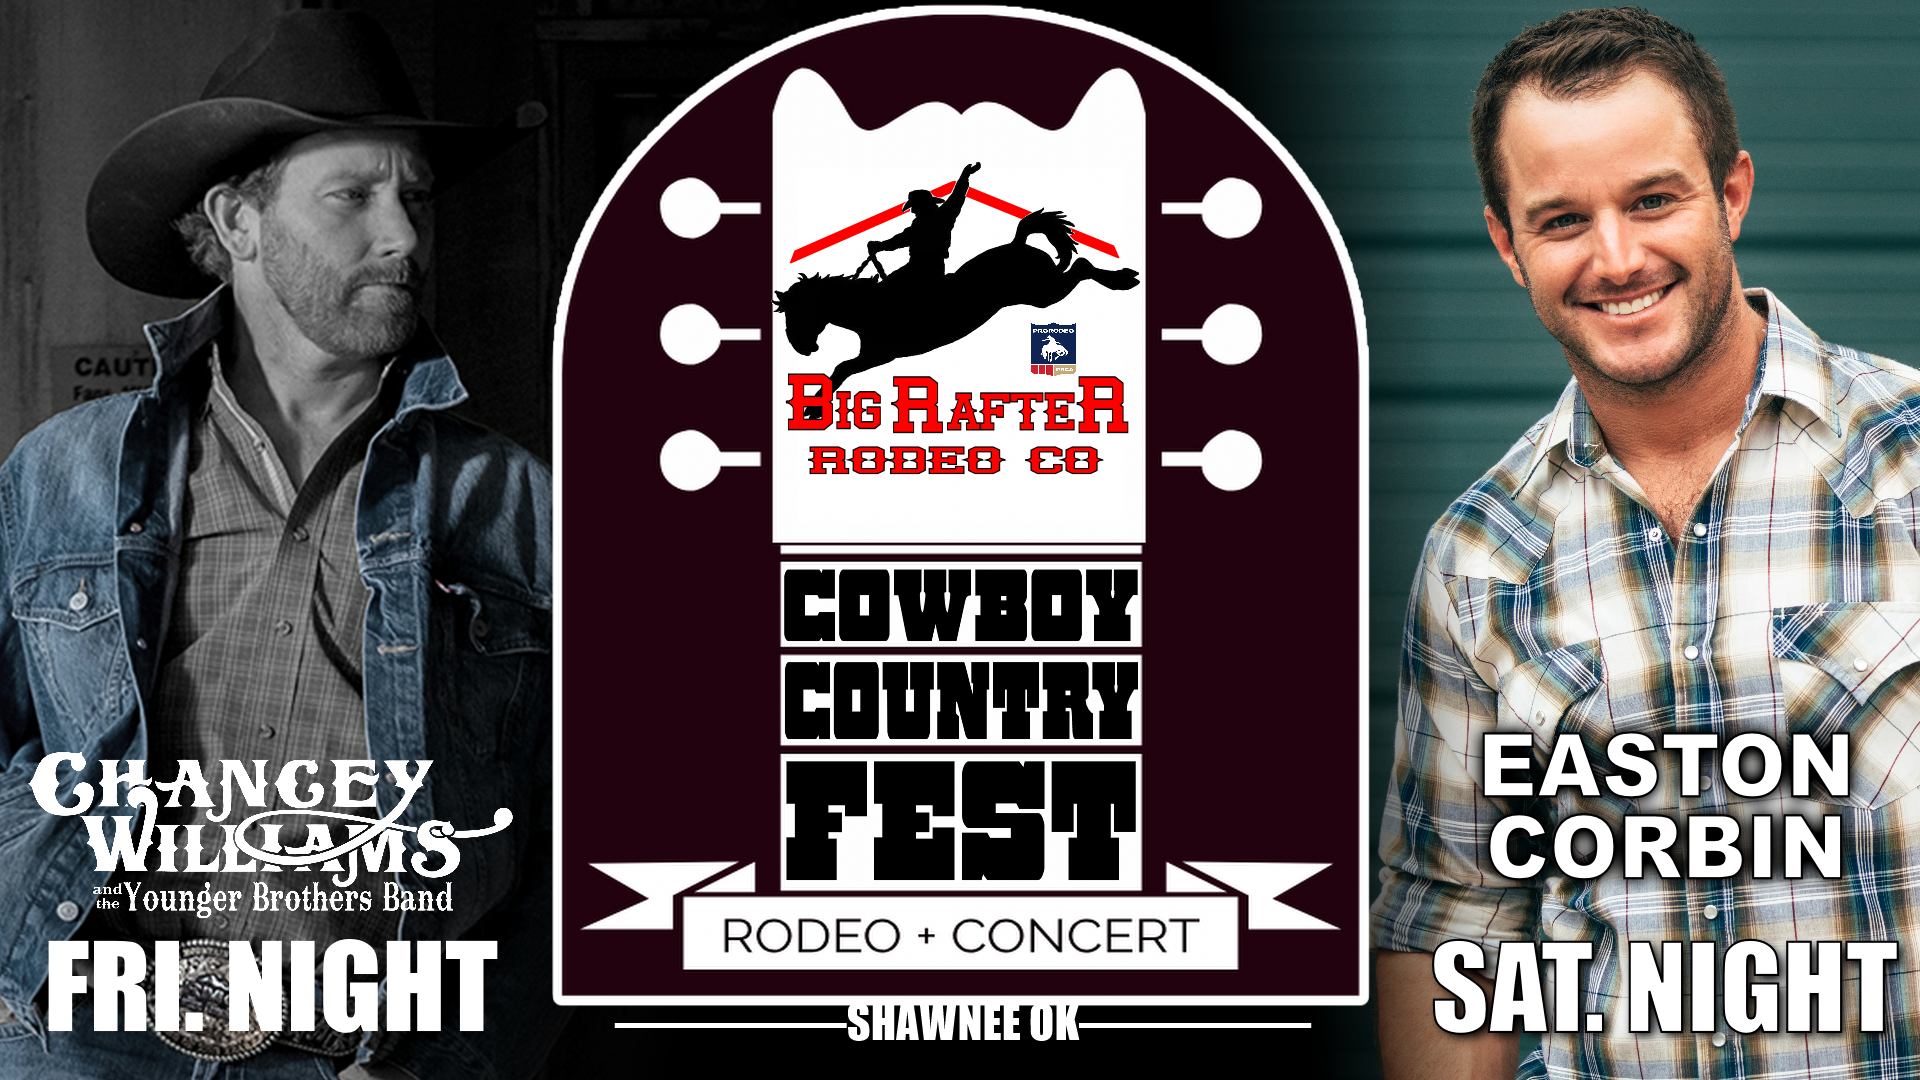 Cowboy Country Fest